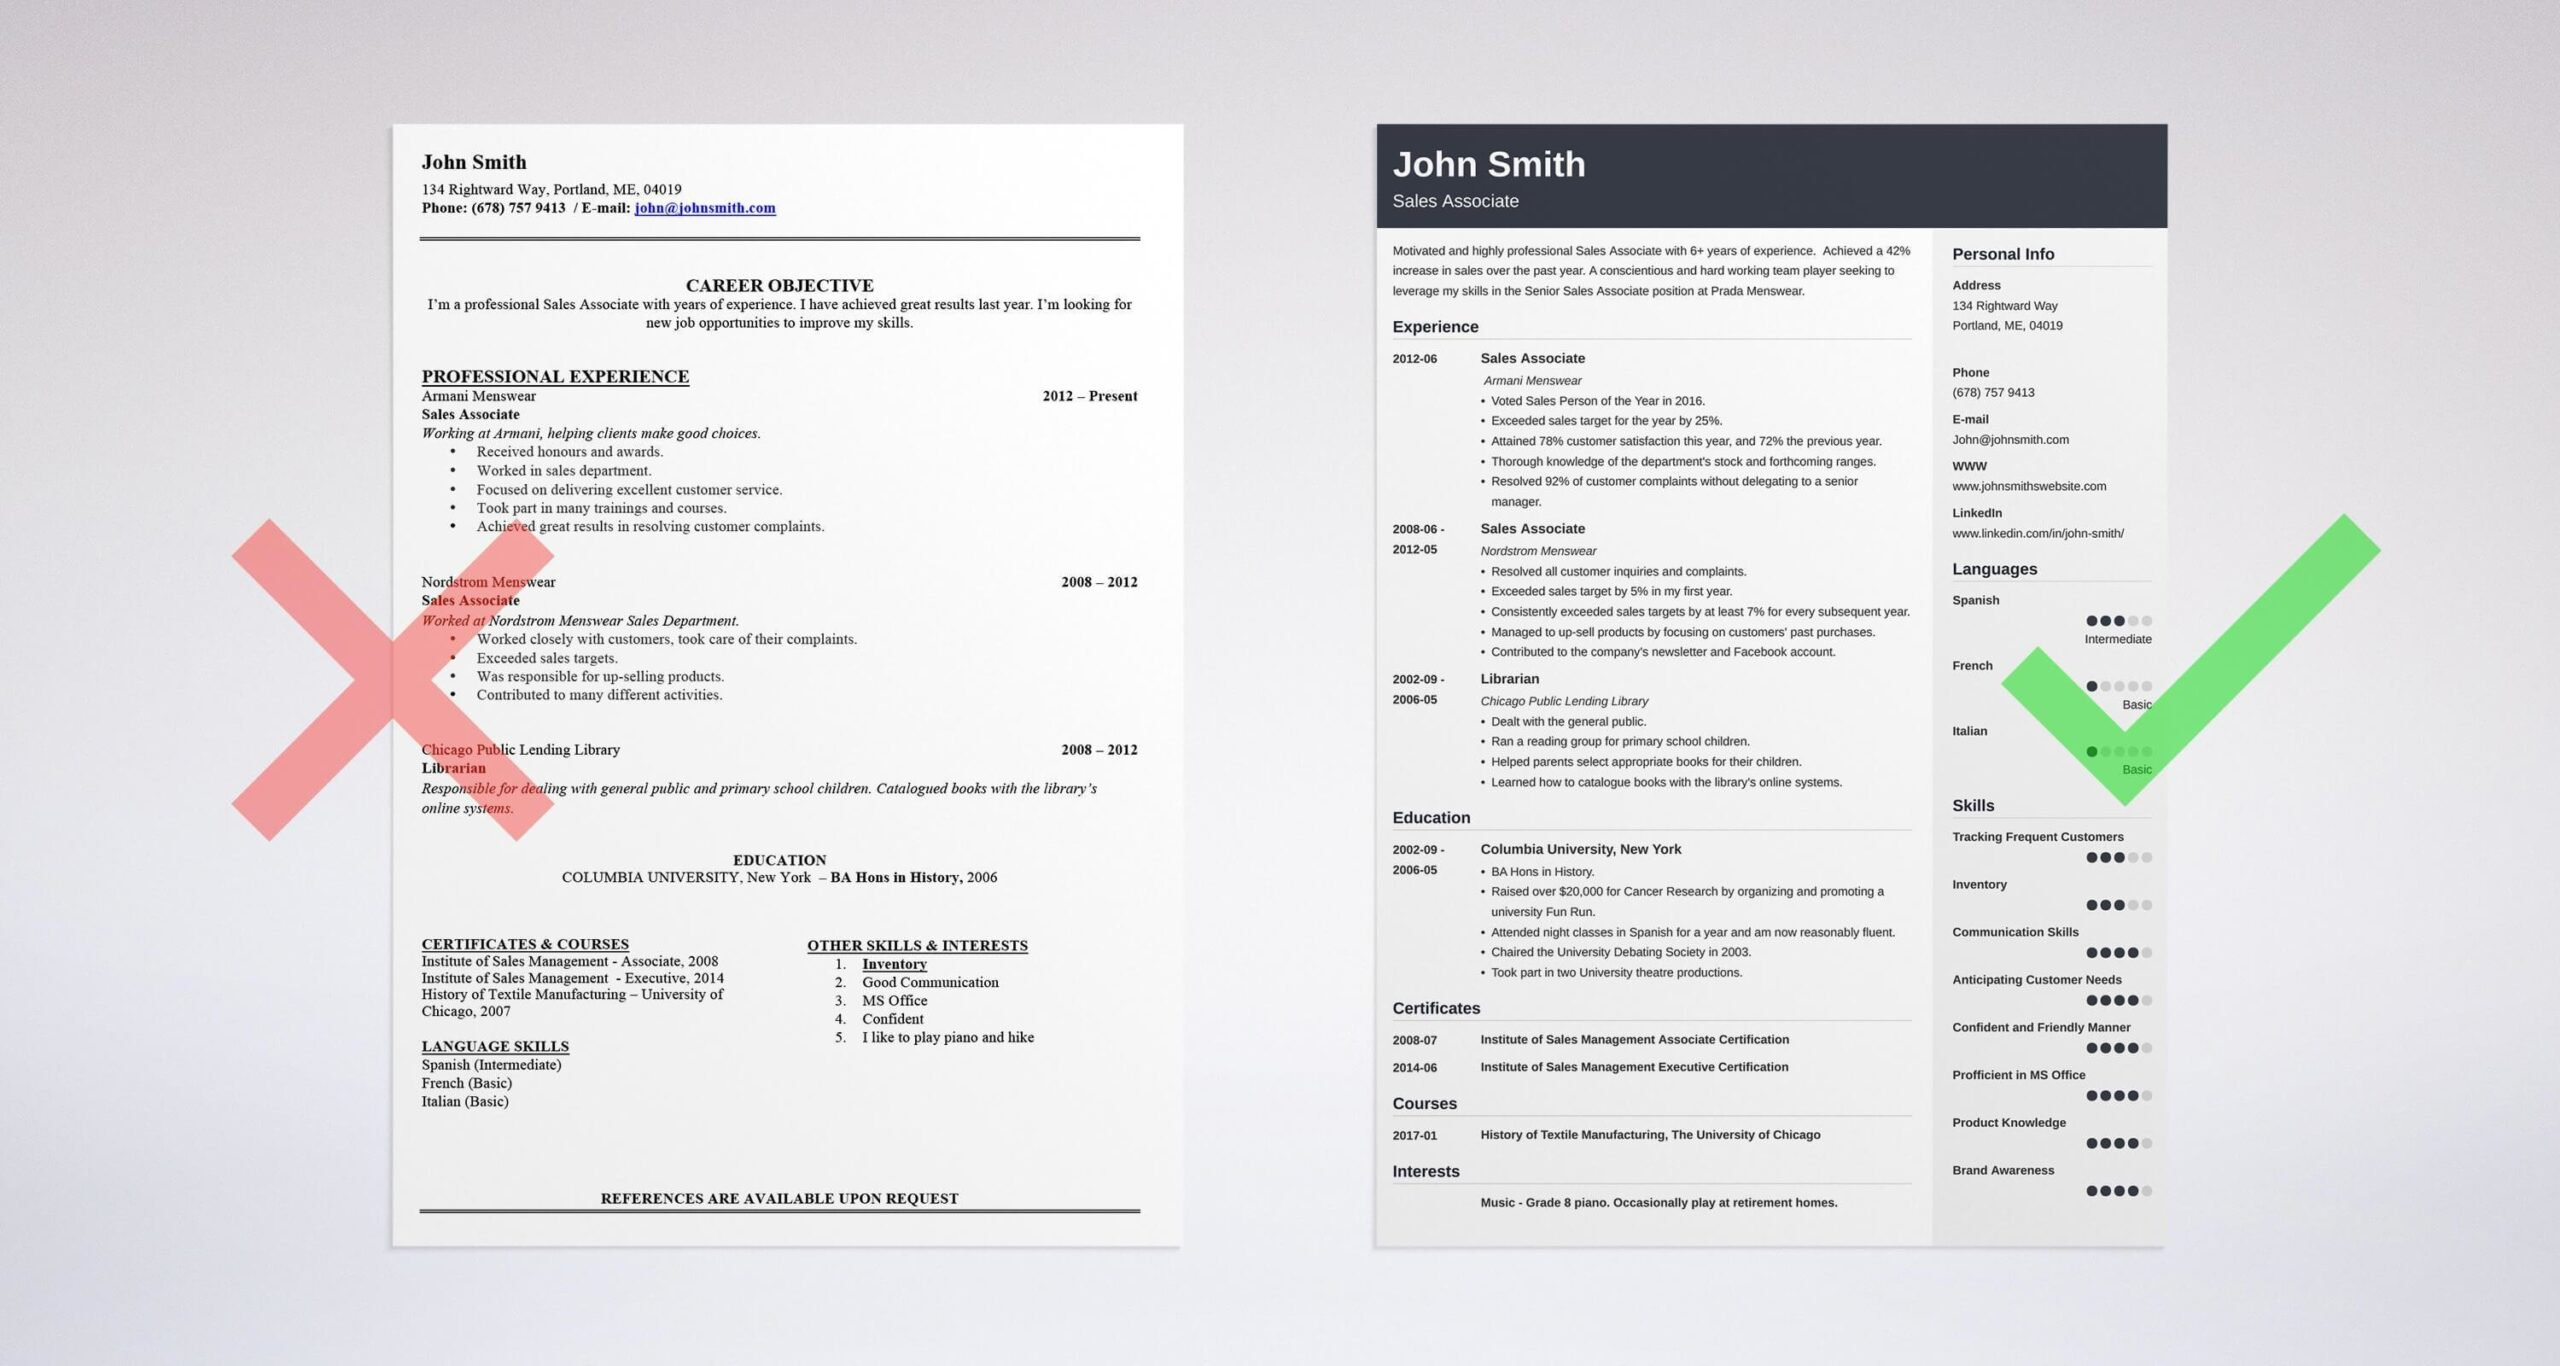 professional resume summary examples statements format for on template cubic nozoom entry Resume Summary Format For Resume